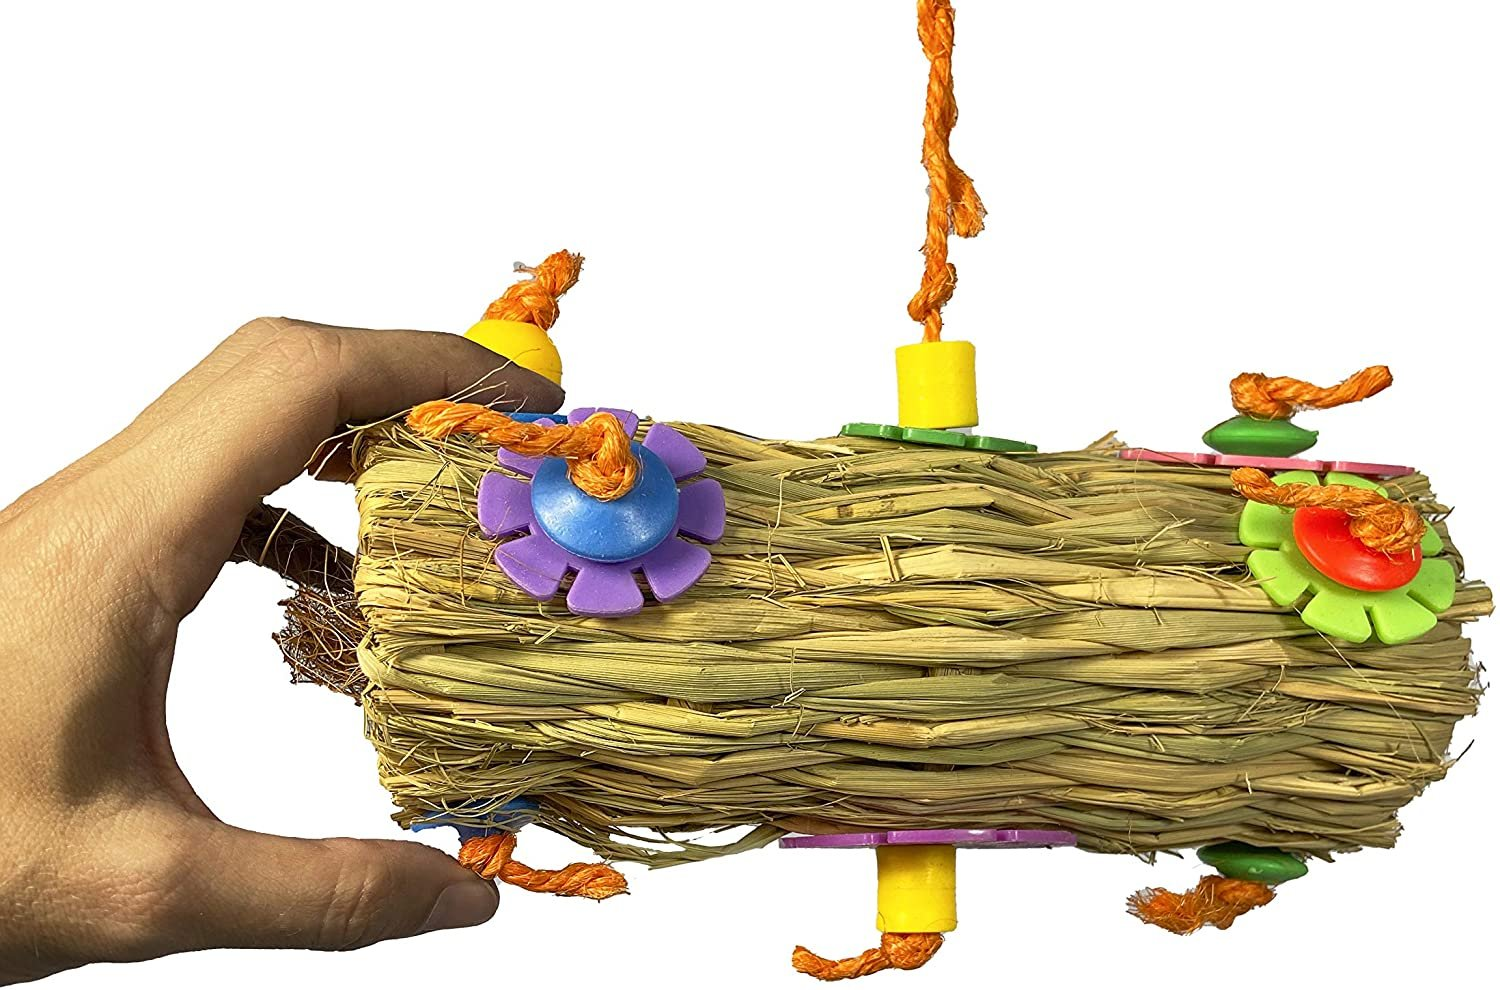 Birds LOVE Coconut Fiber Burrito Parrot Toy, Foraging and Preening Fun for Medium Birds